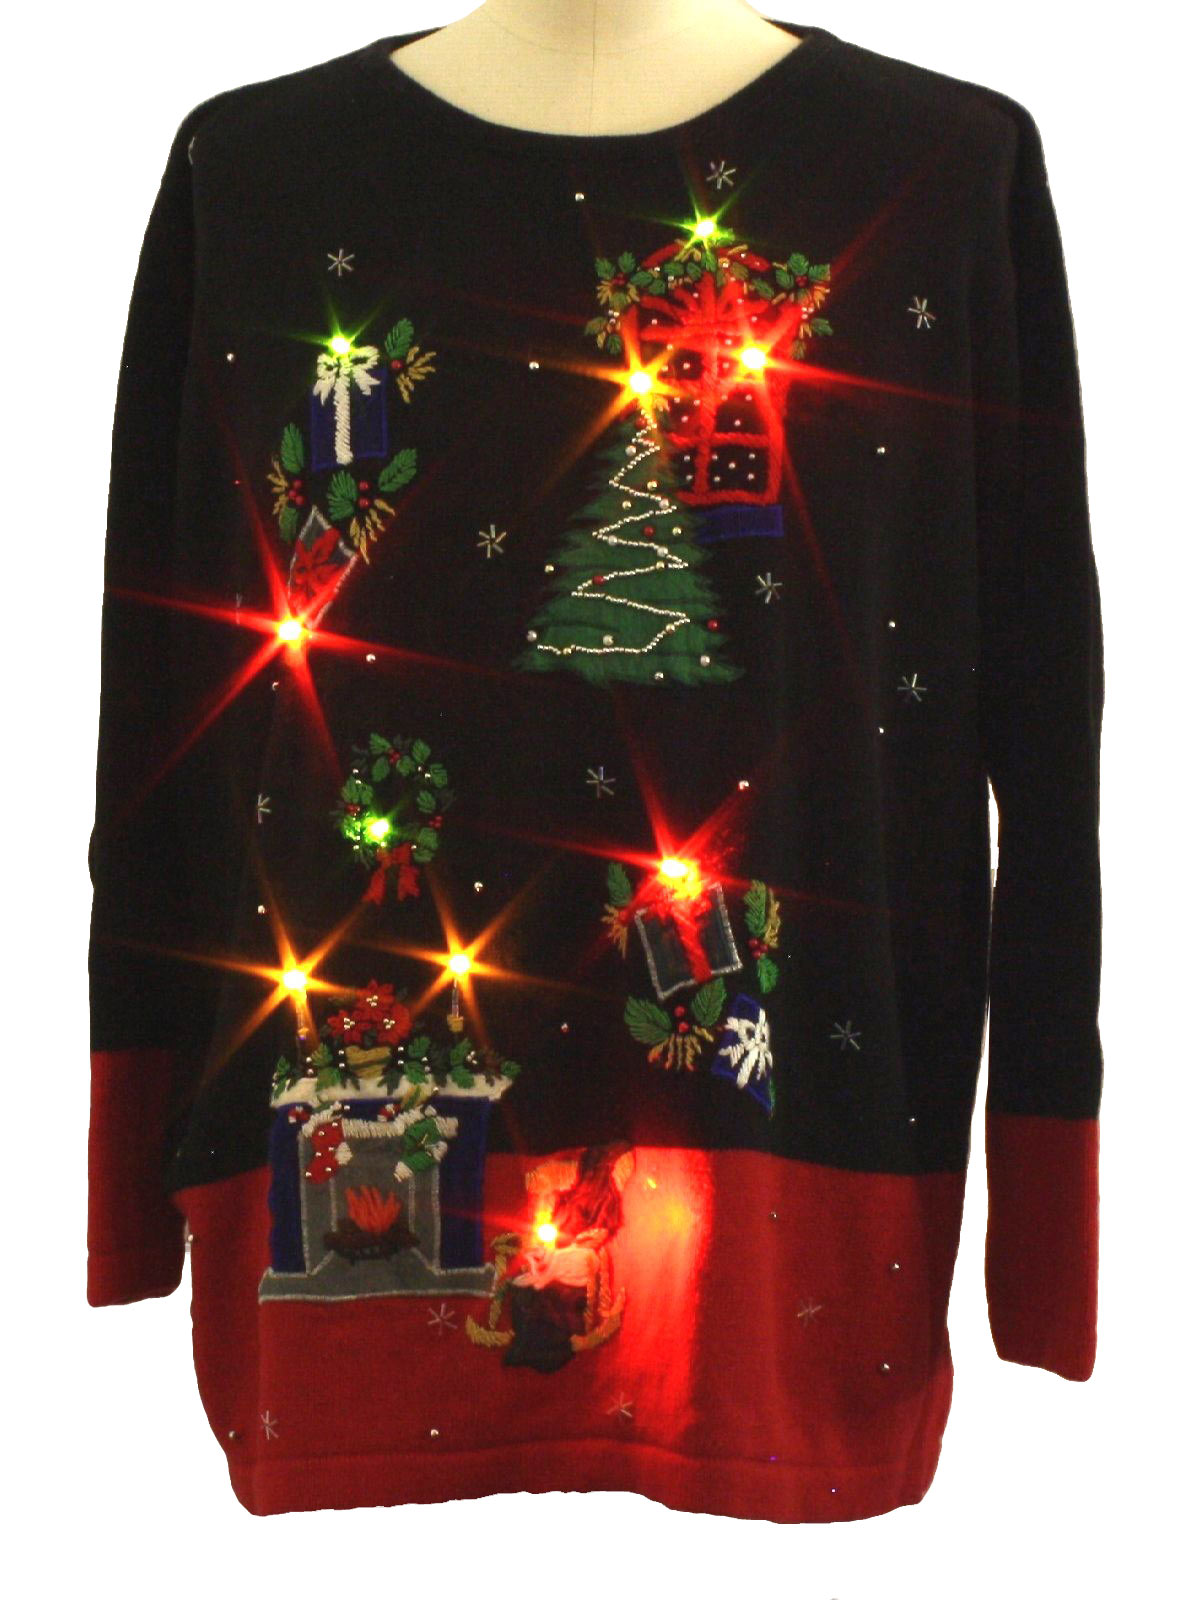 Lightup Ugly Christmas Sweater Bp Design Unisex Black And Red Background Ramie Cotton Blend